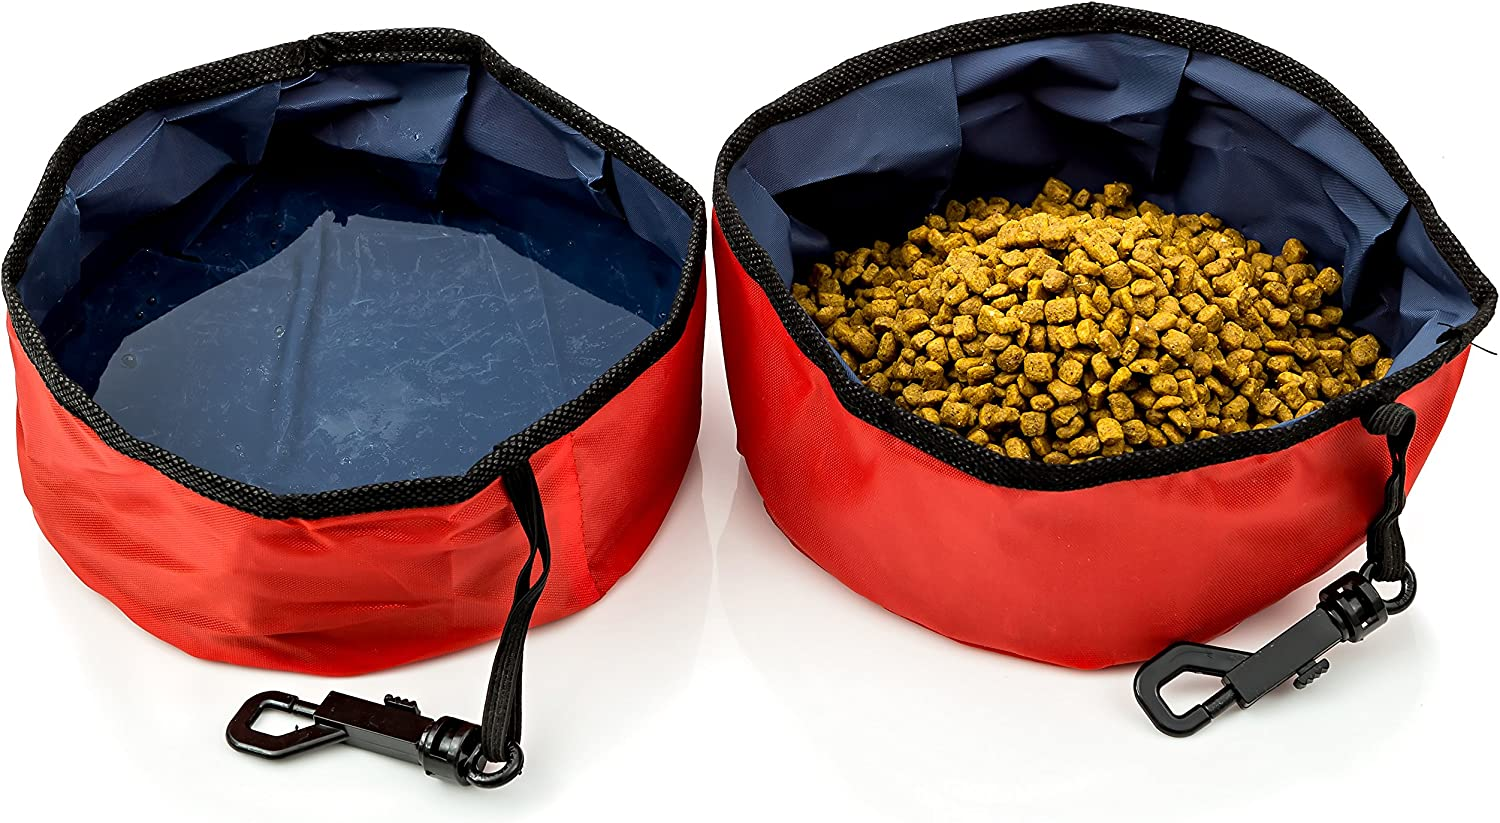 Travel Pet Bowl for Food and Water, Folding Collapsible, for Dogs and Cats-2 Pack